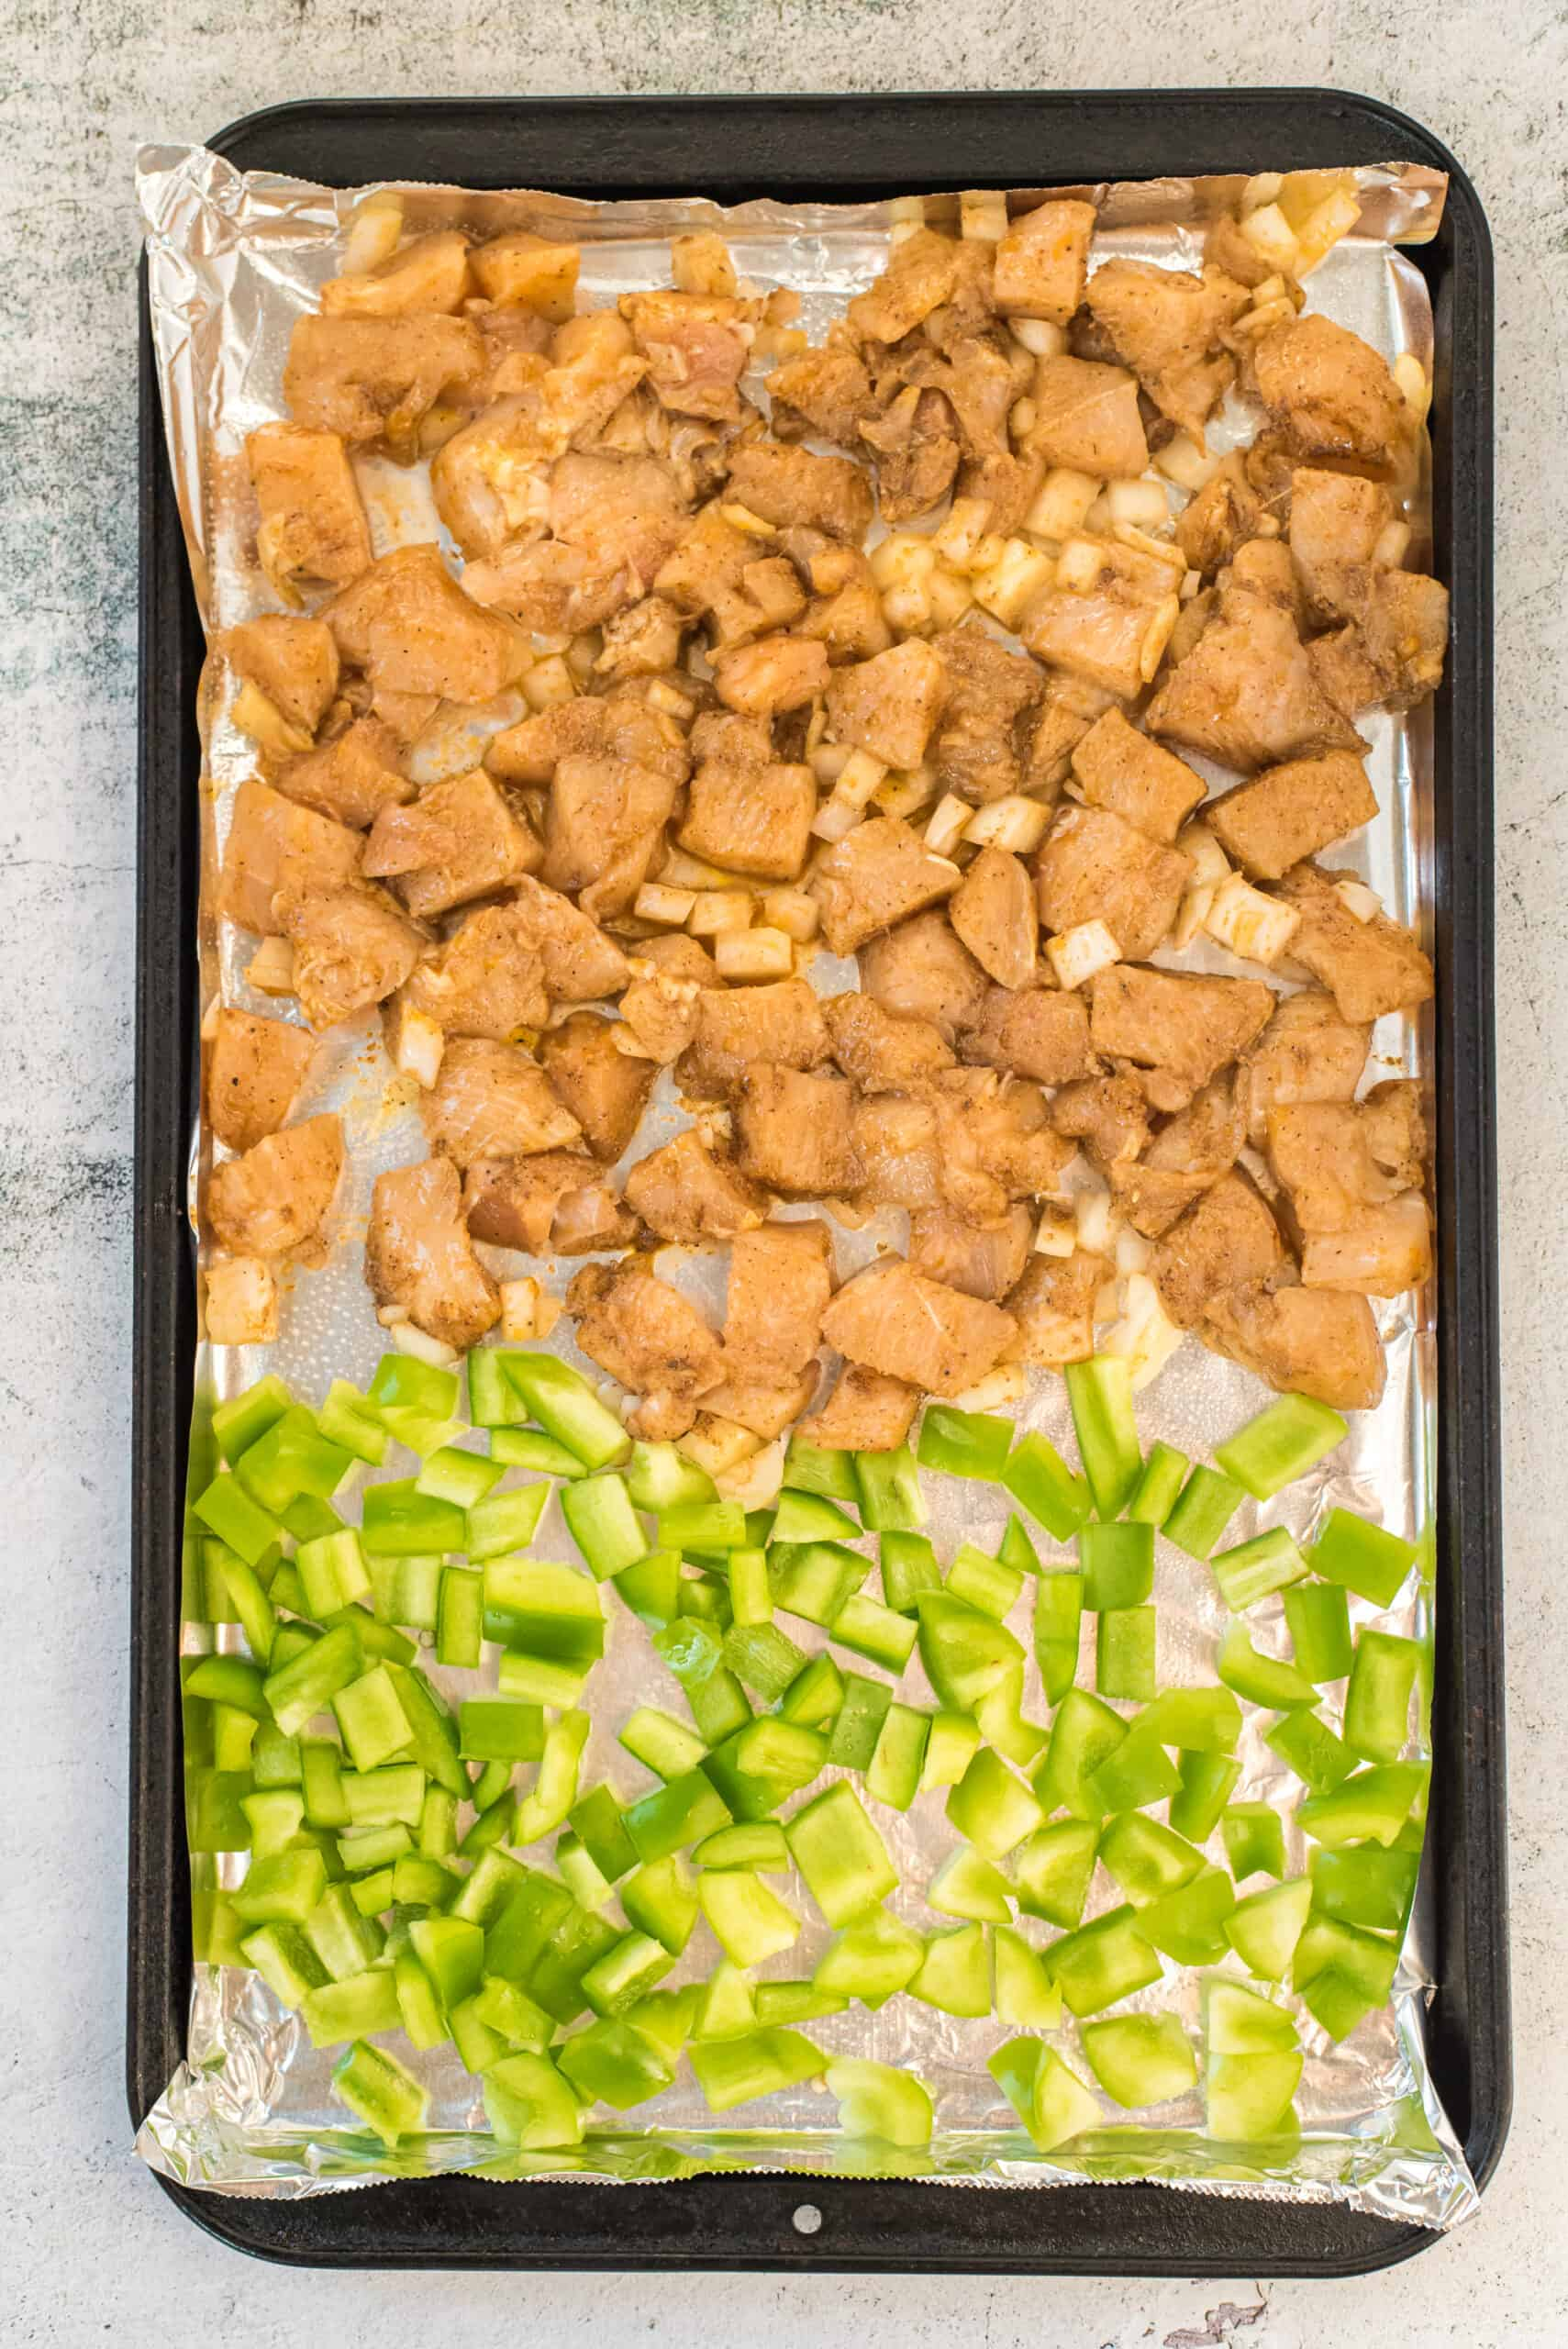 Baking sheet with chicken, onion, and peppers.